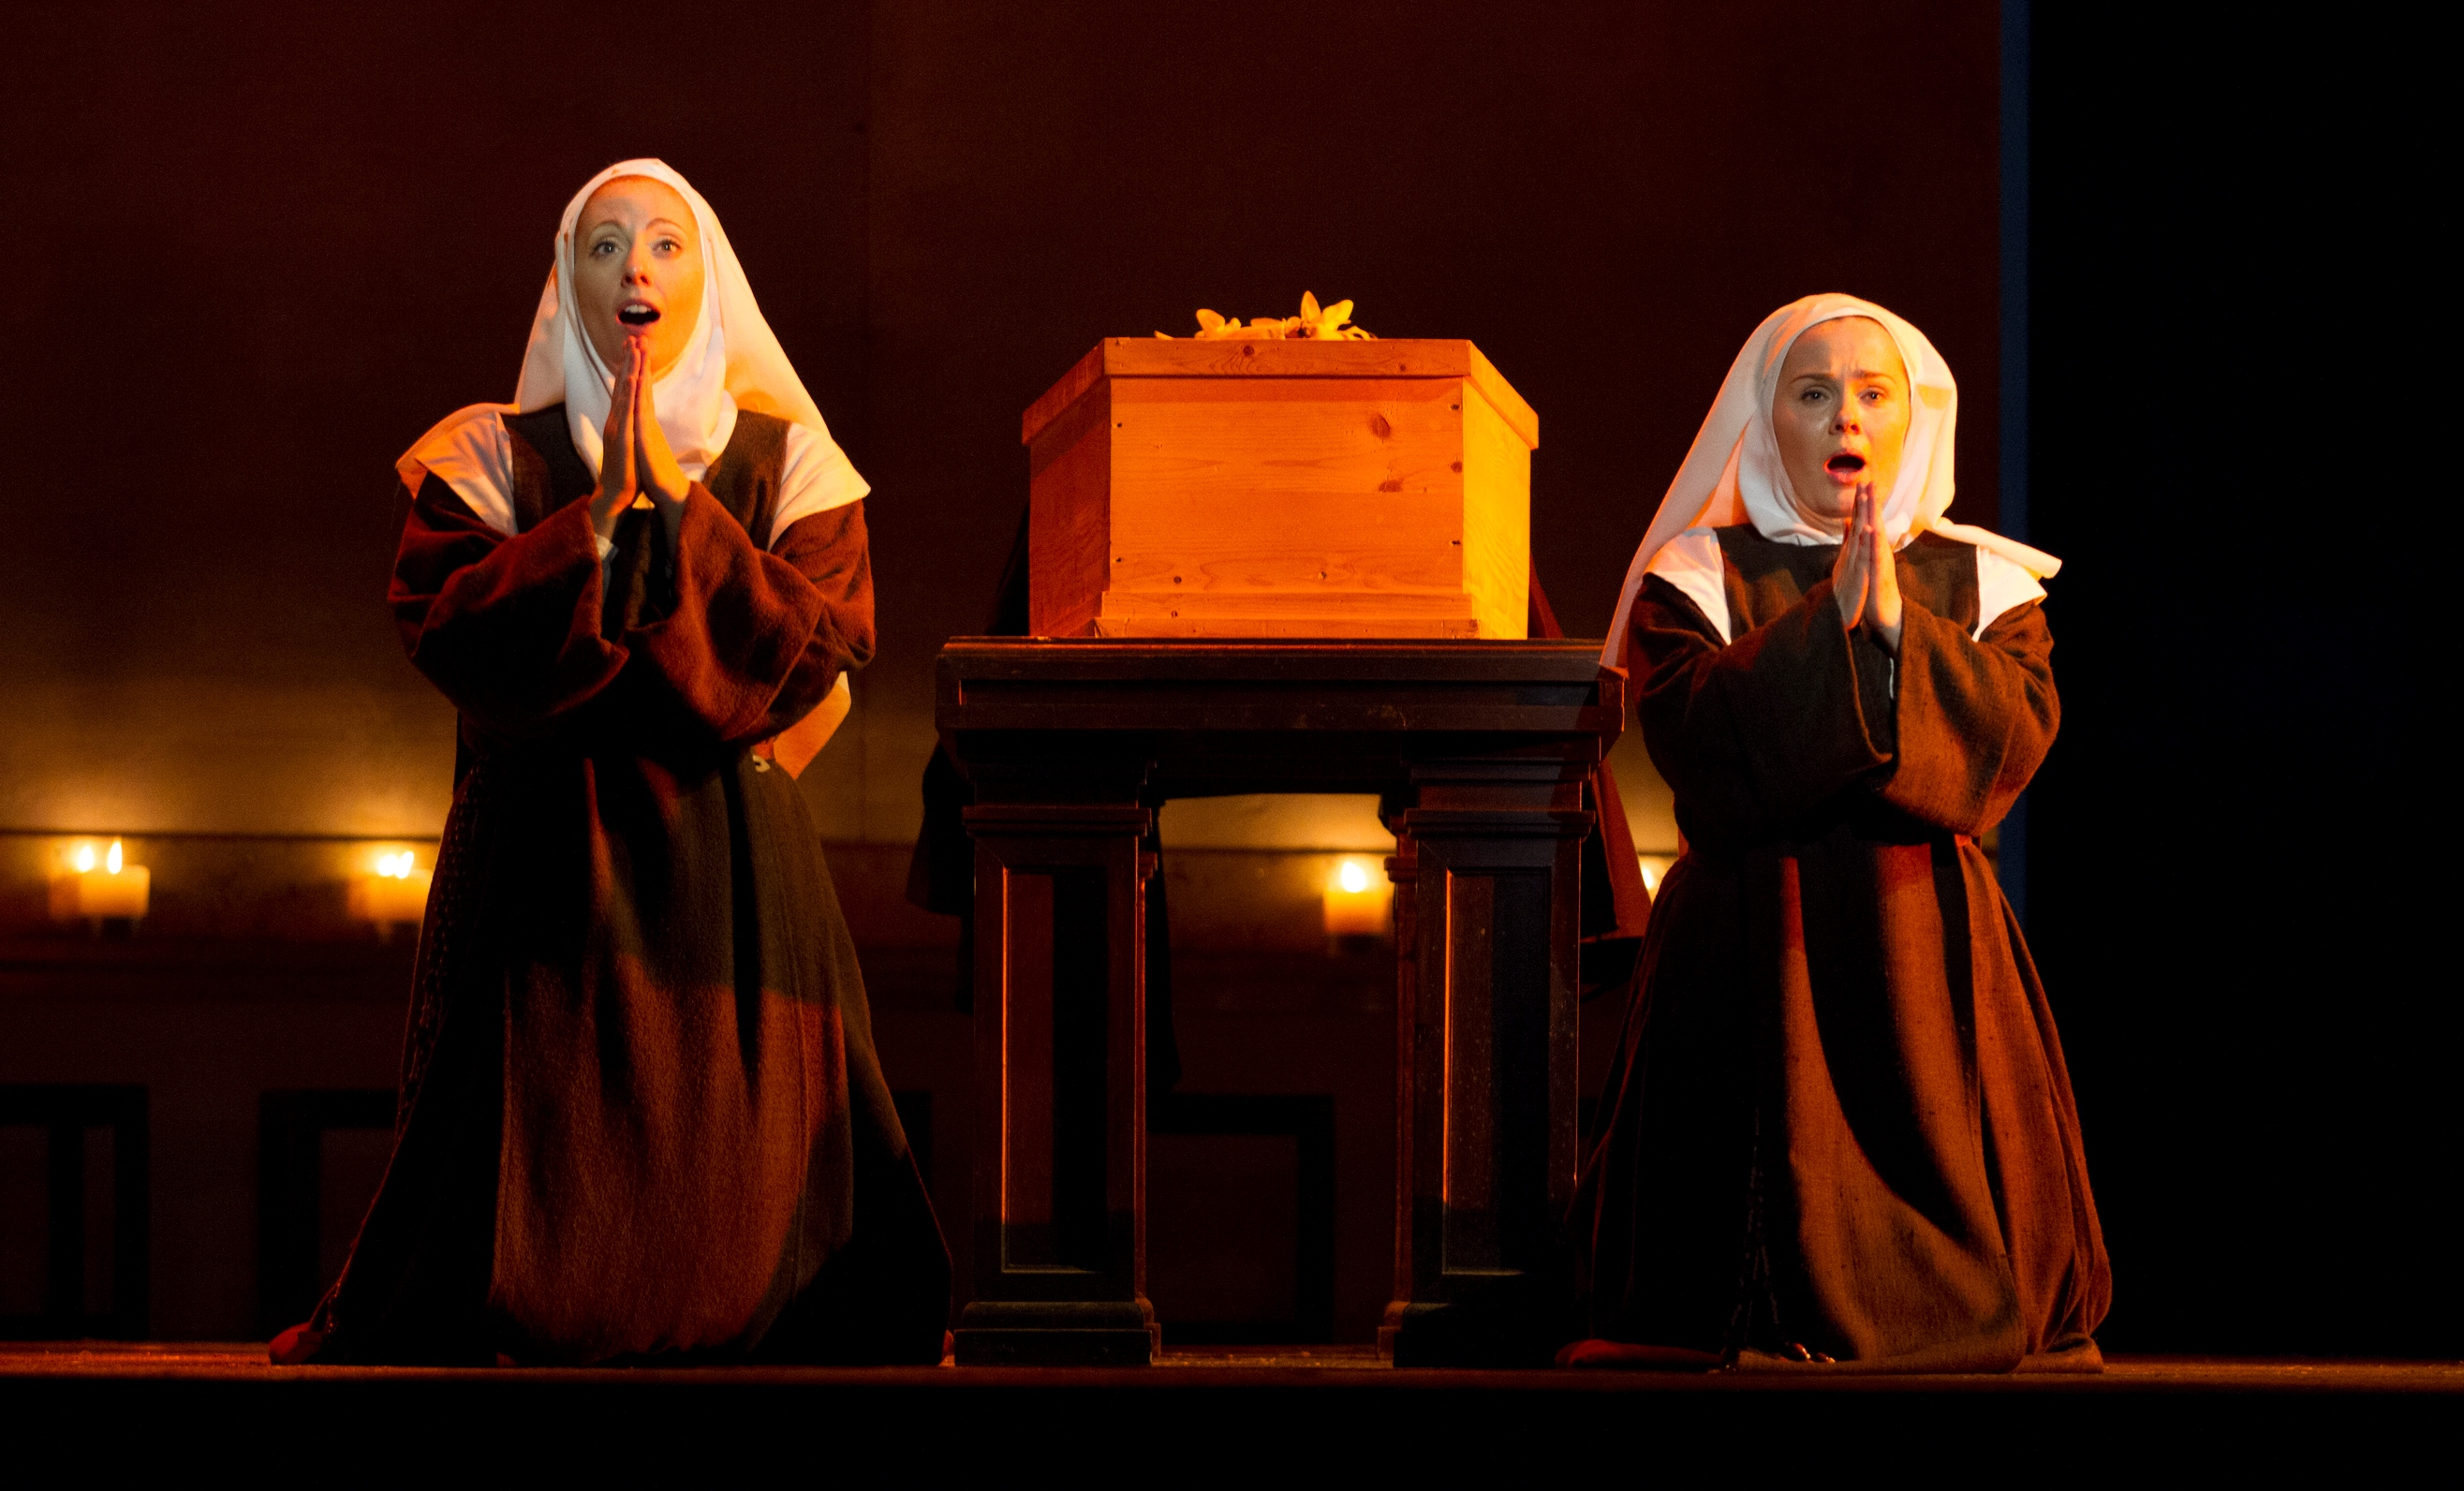 Layla Claire as Blanche de la Force and Ashley Emerson as Sister Constance. Photo by Scott Suchman for Washington National Opera.